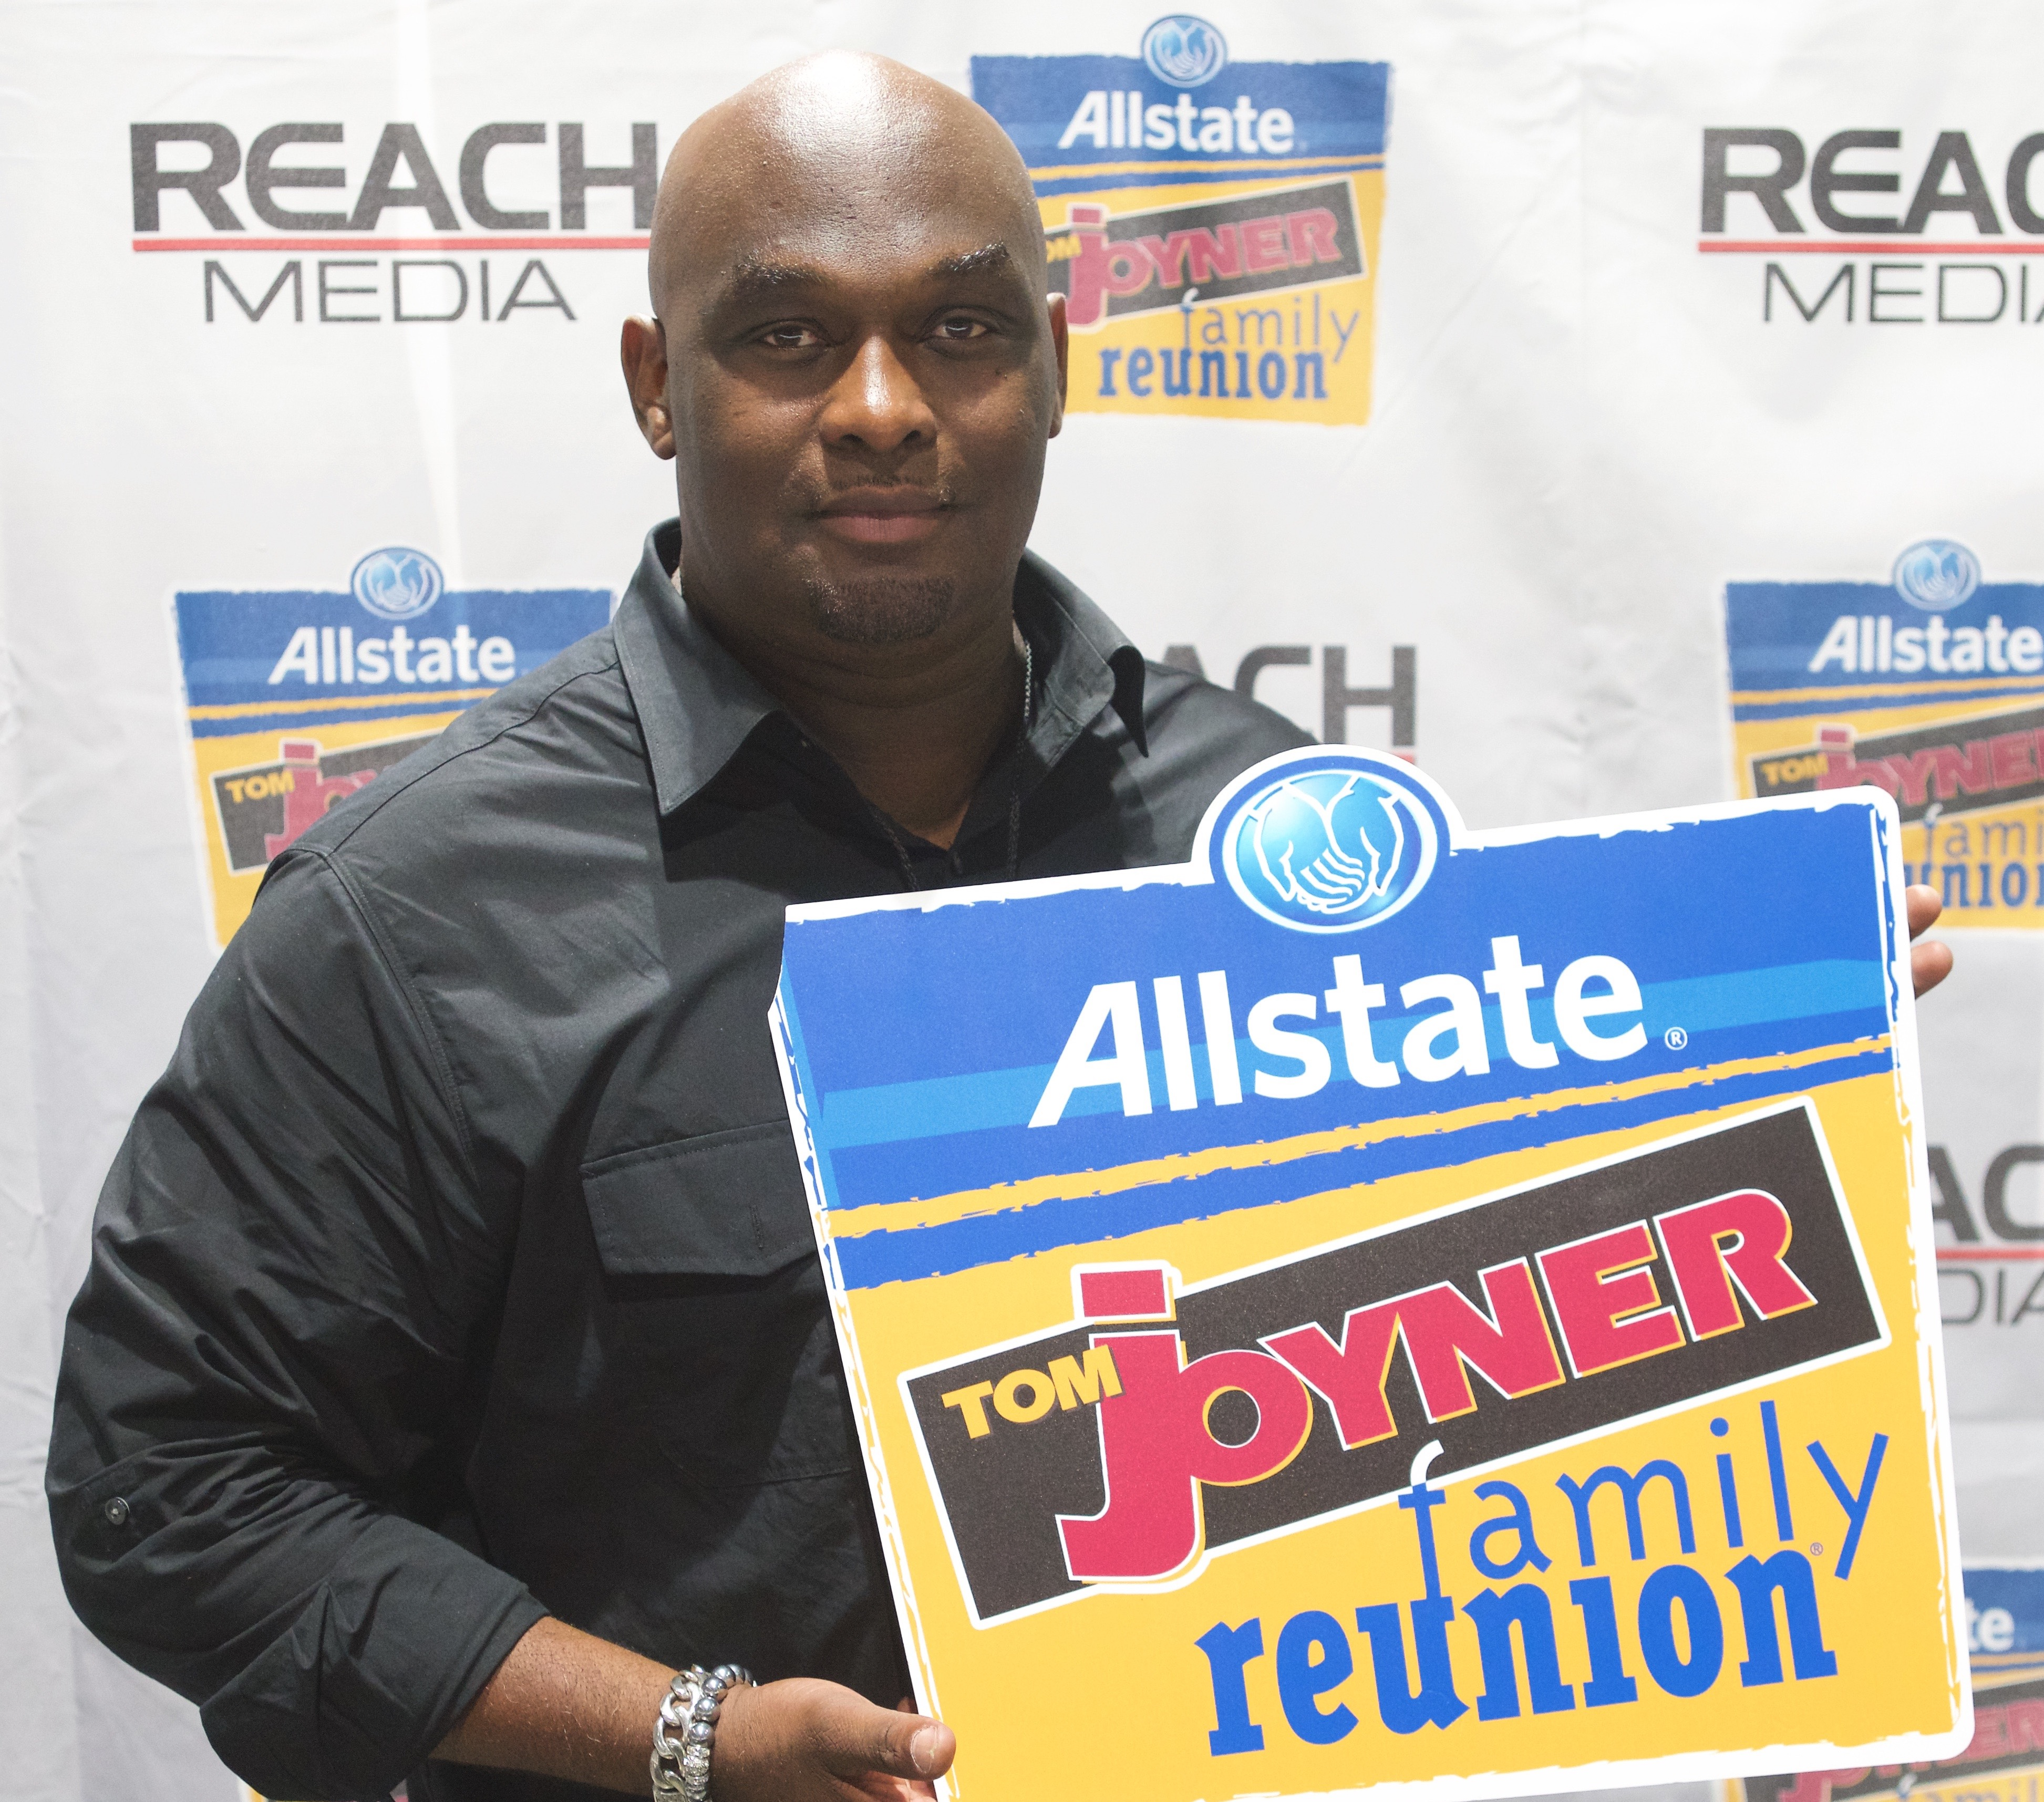 c5dee0ff775 Reports Have Surfaced That Tommy Ford Is Fighting For His Life ...